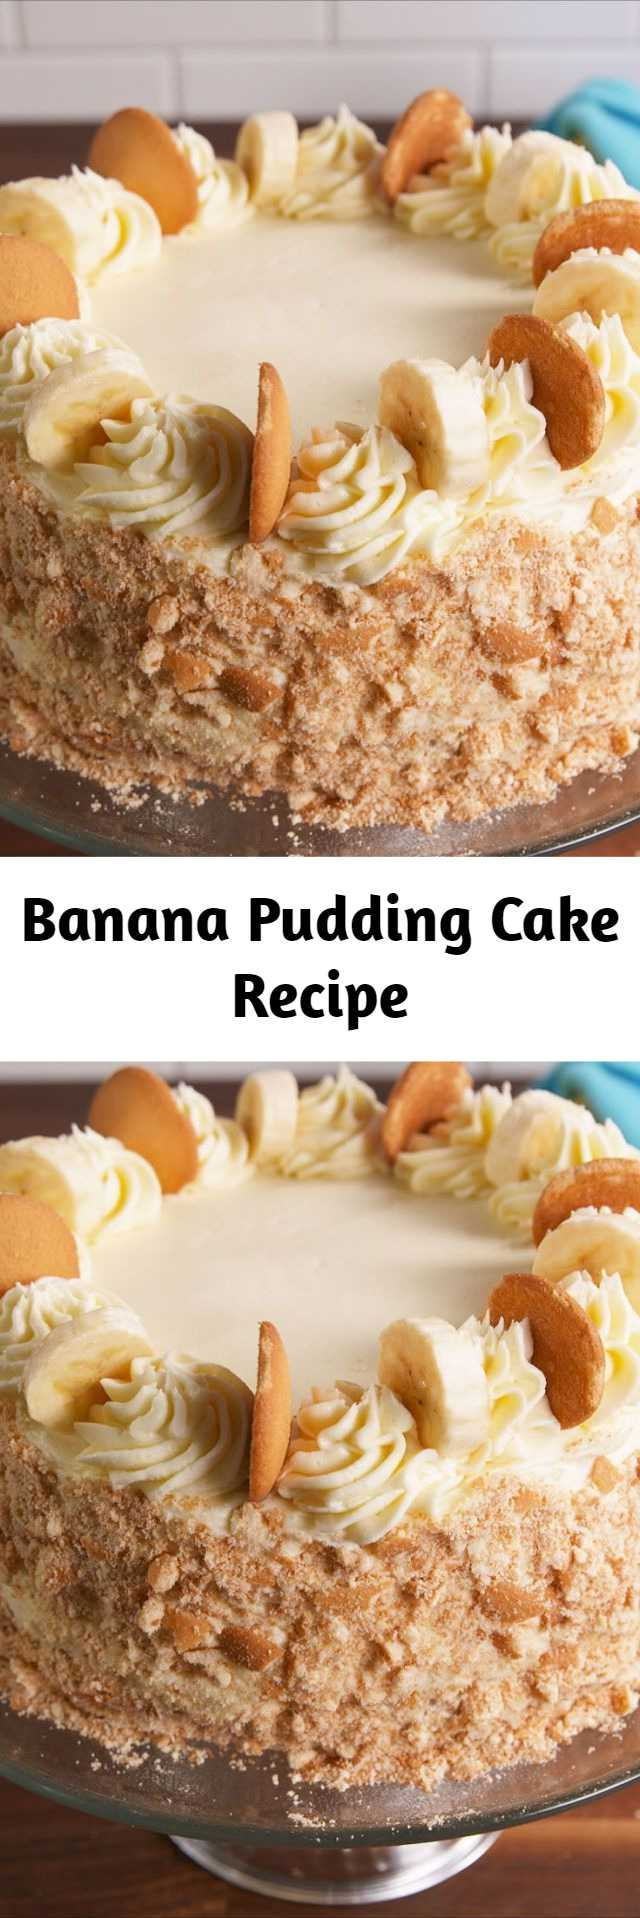 Banana Pudding Cake Recipe - Though it will be hard, try to resist adding a ton of pudding in between the layers. Otherwise, things will get pretty messy. If that means there's extra pudding left over, so be it. We know you'll find some use for it.